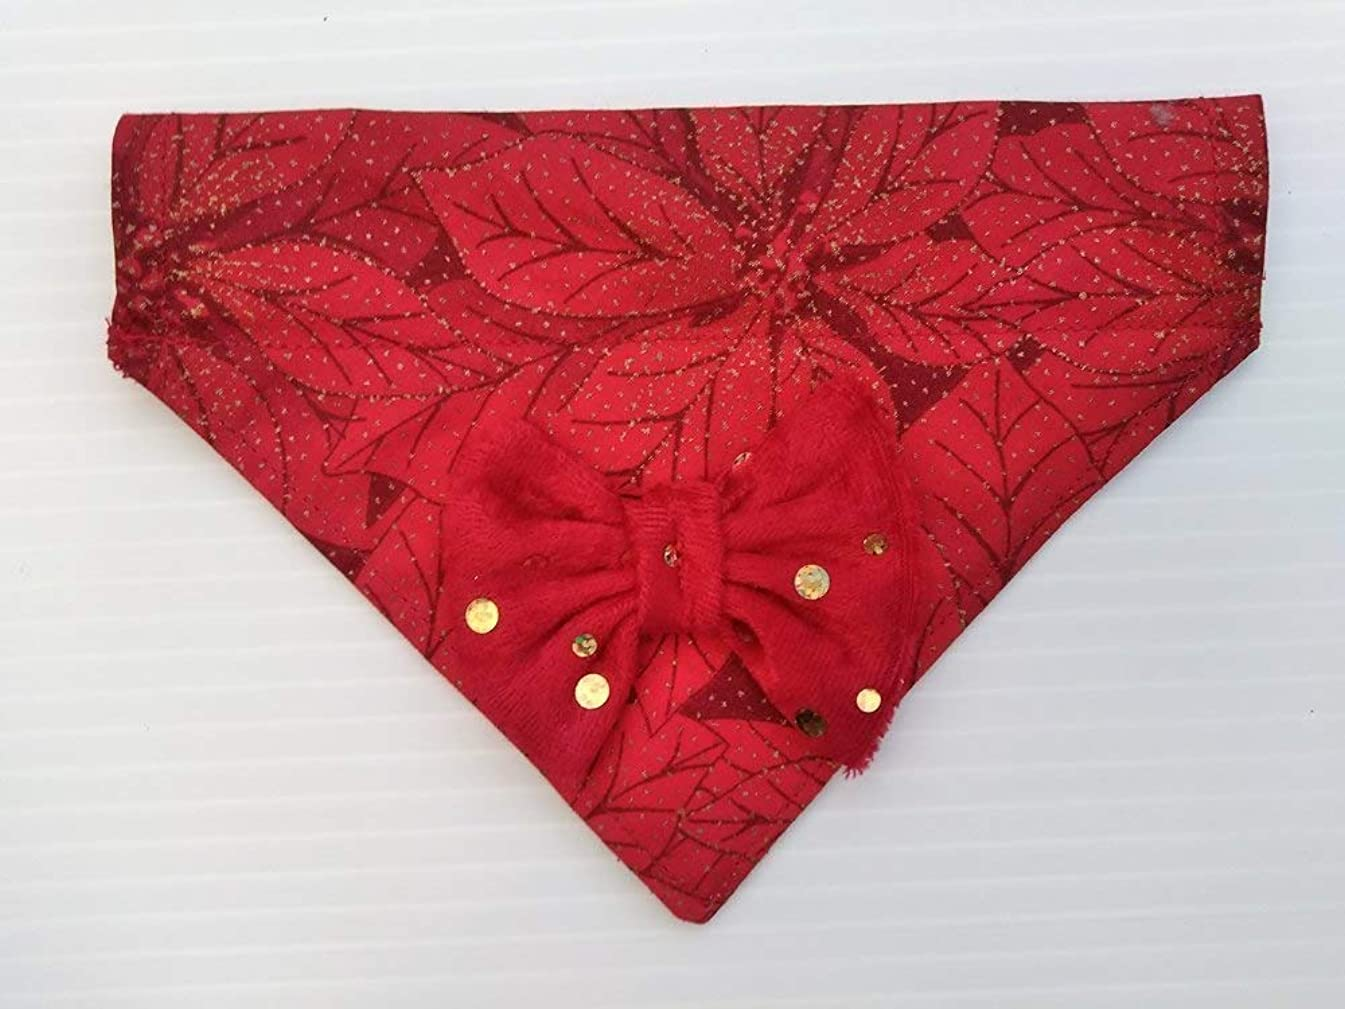 Festive Christmas Poinsettia No-Tie Dog Bandana with Red Velvety Sequined Bow